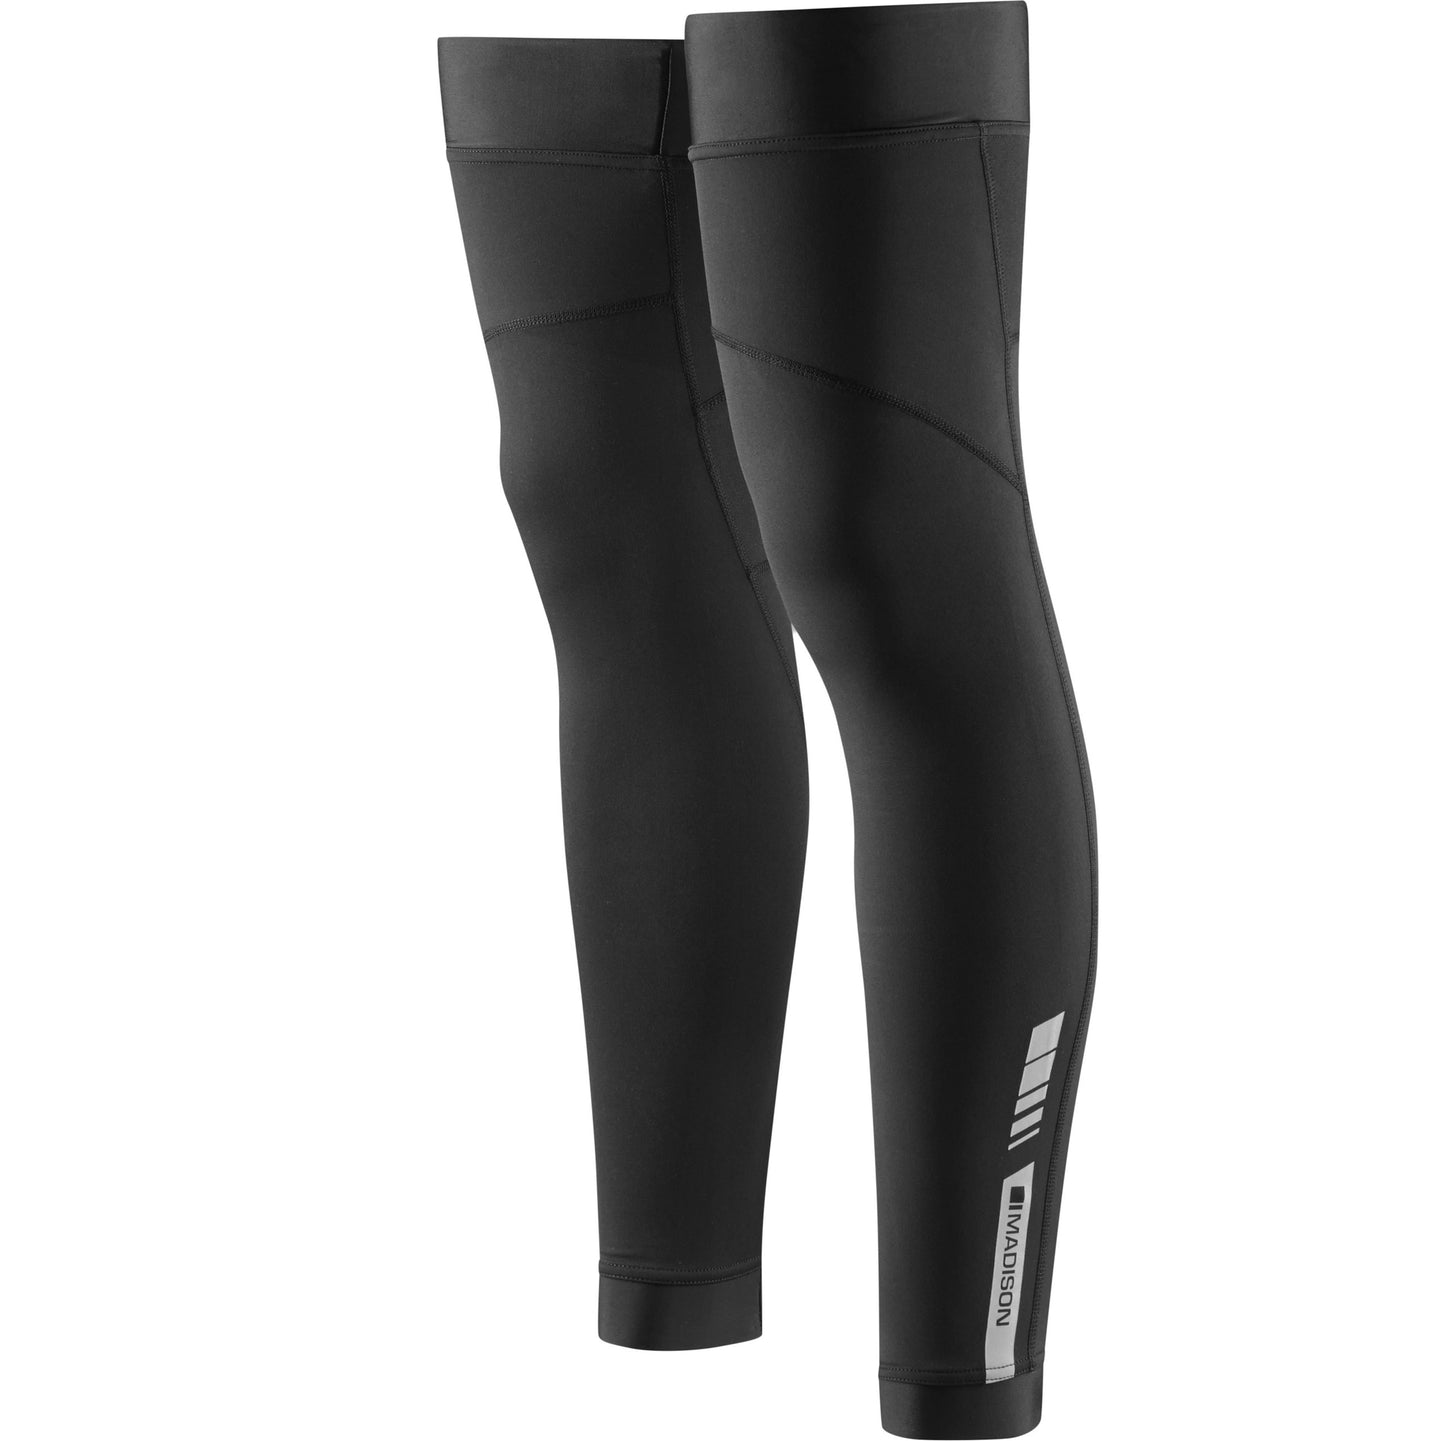 Madison Sportive Thermal leg warmers, black | VeloVixen